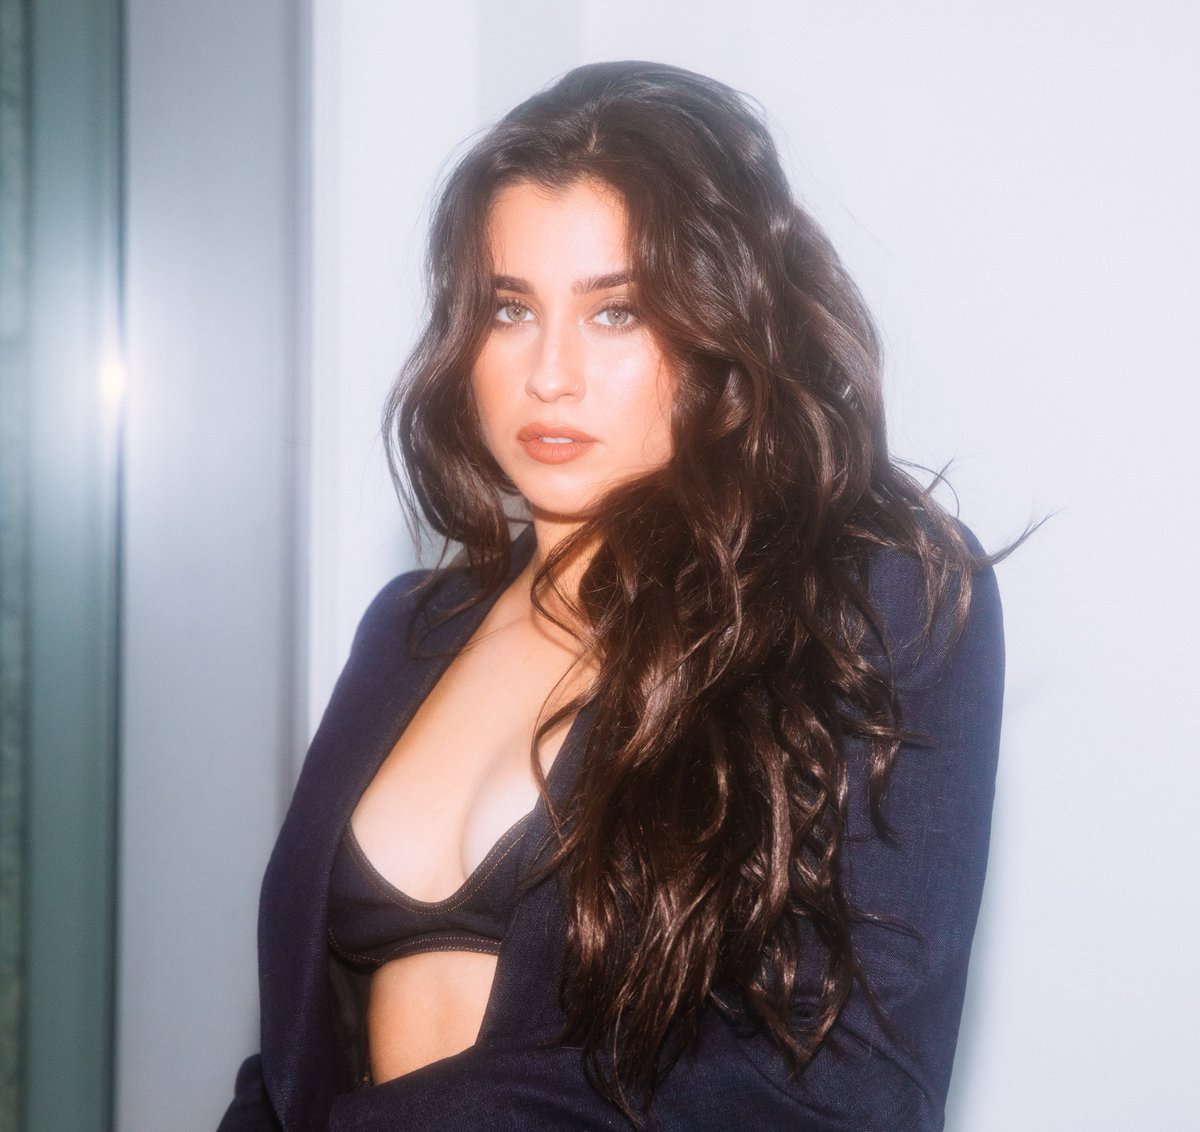 We love a bilingual bop 😍 Listen to #Lento from @LaurenJauregui and @Tainy now spoti.fi/lento